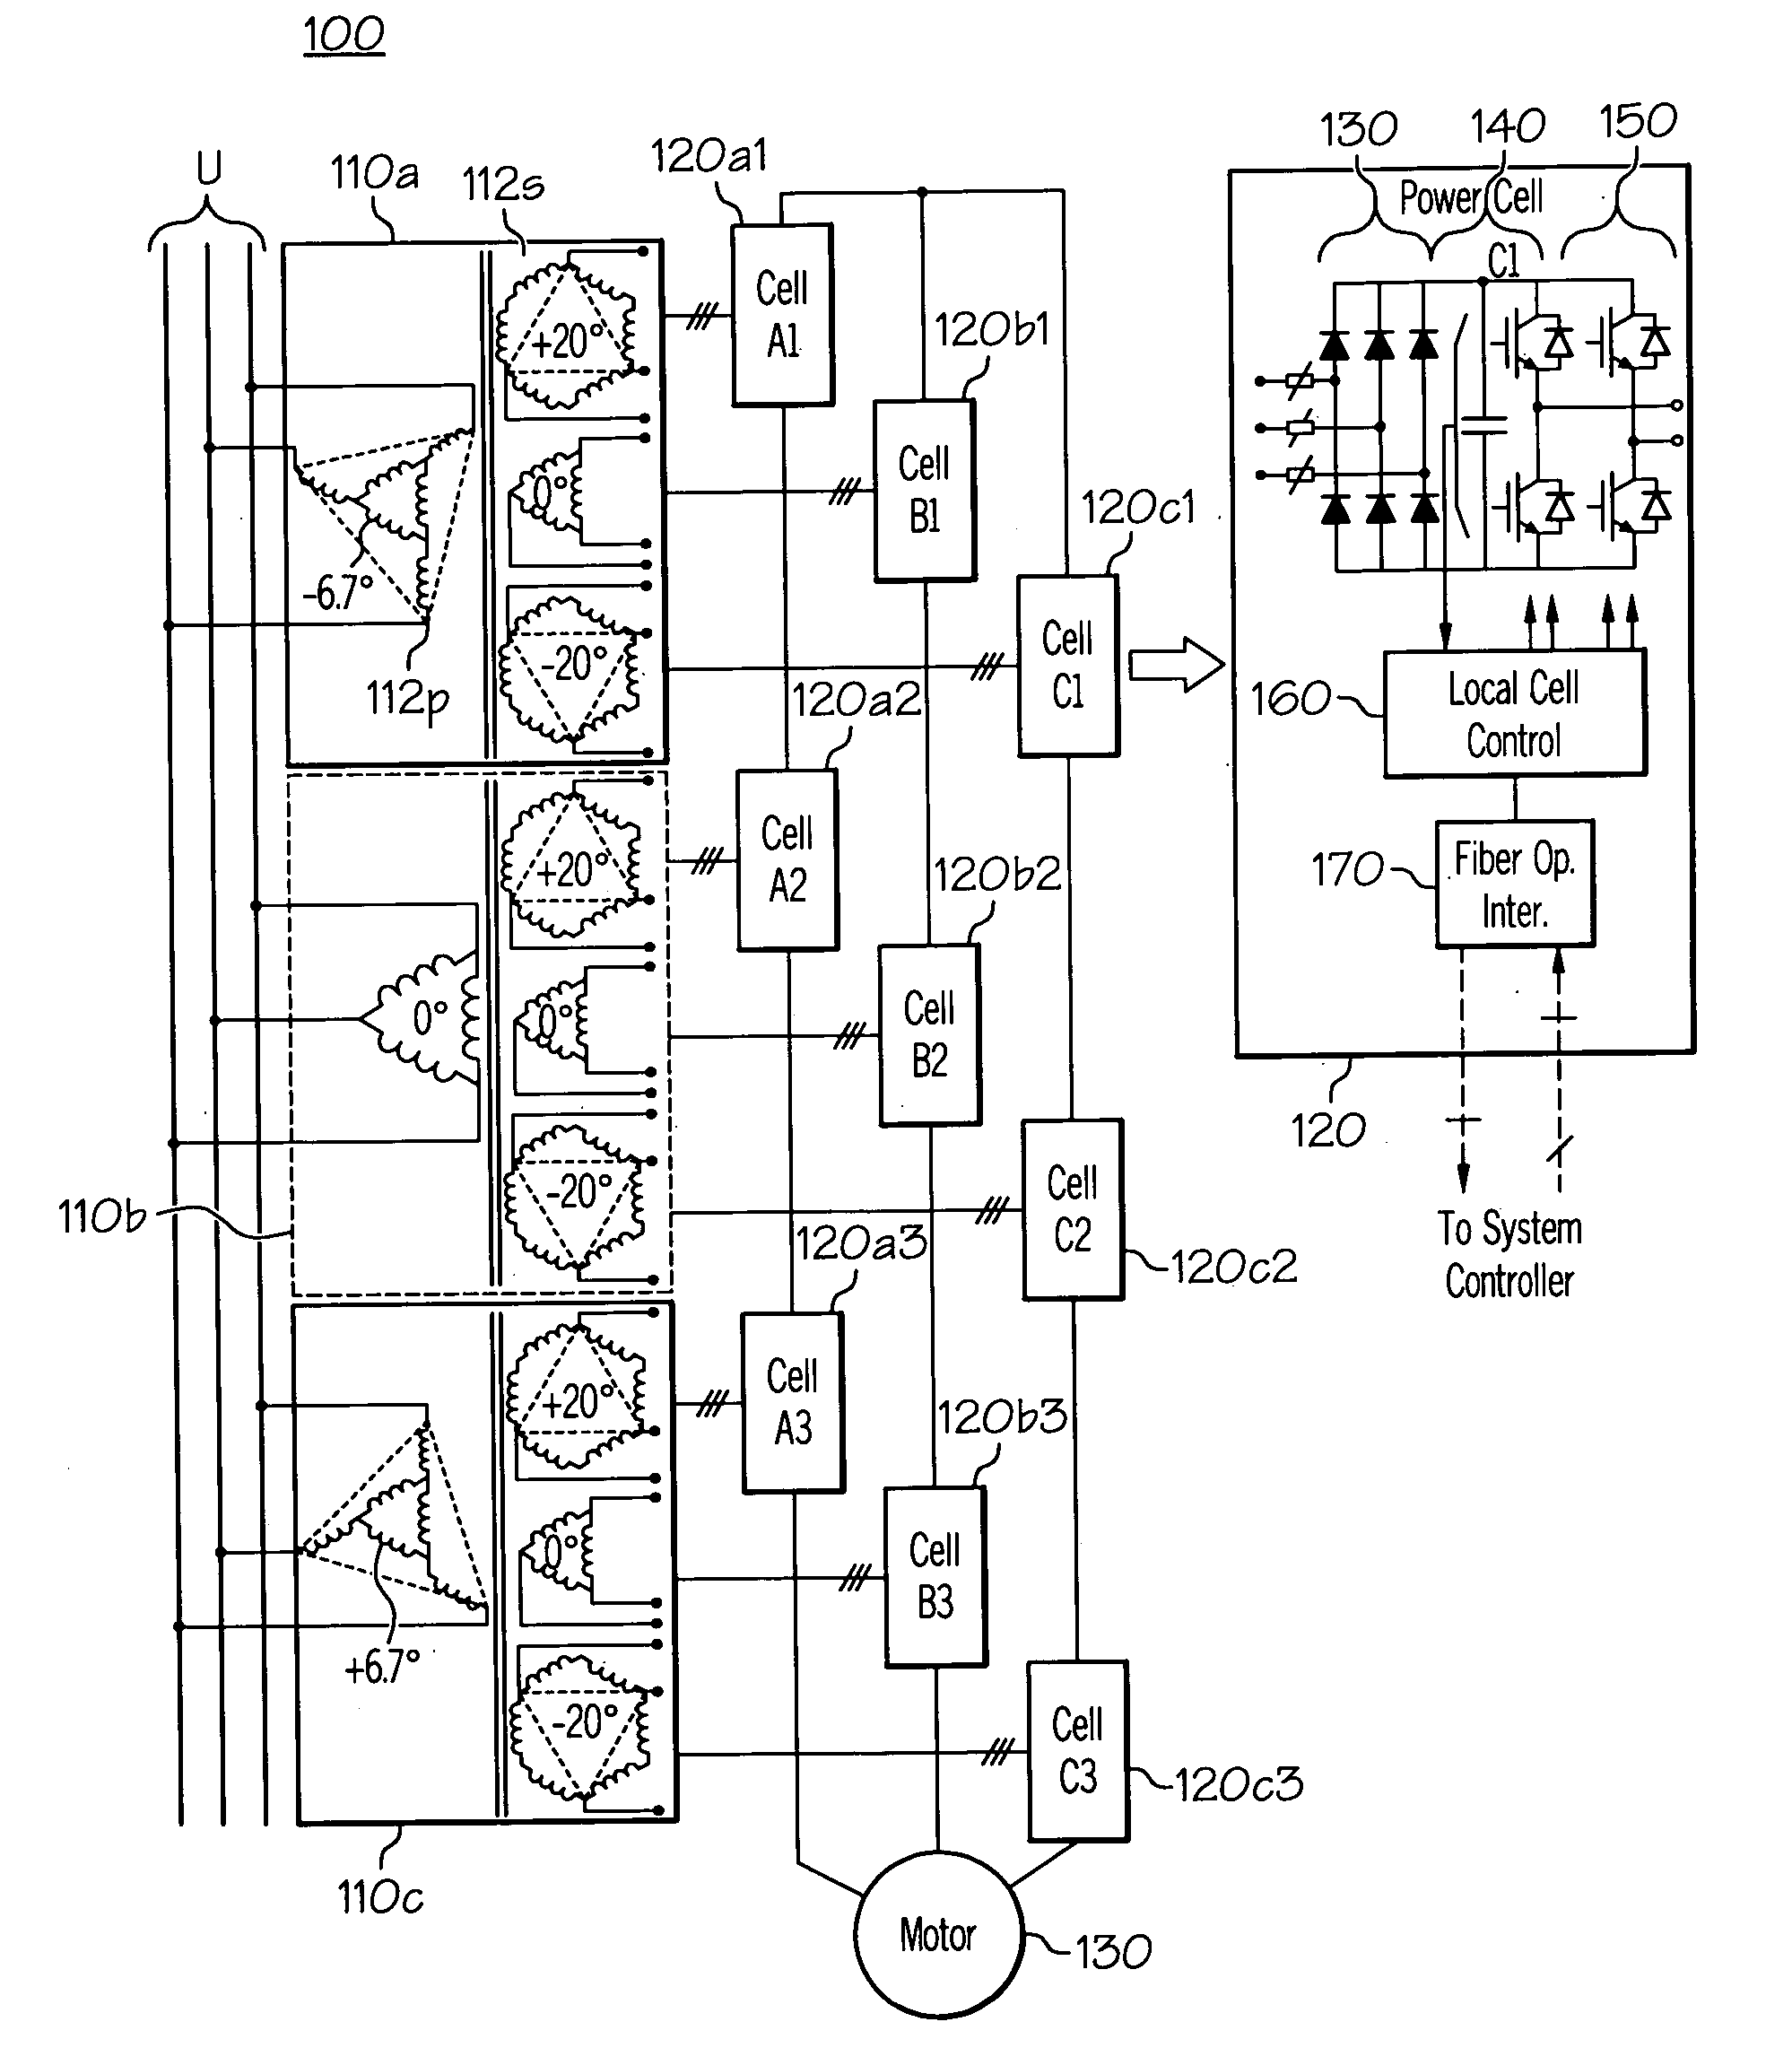 Patent Drawing: Freedom 20 Inverter Wiring Diagram At Chusao.net